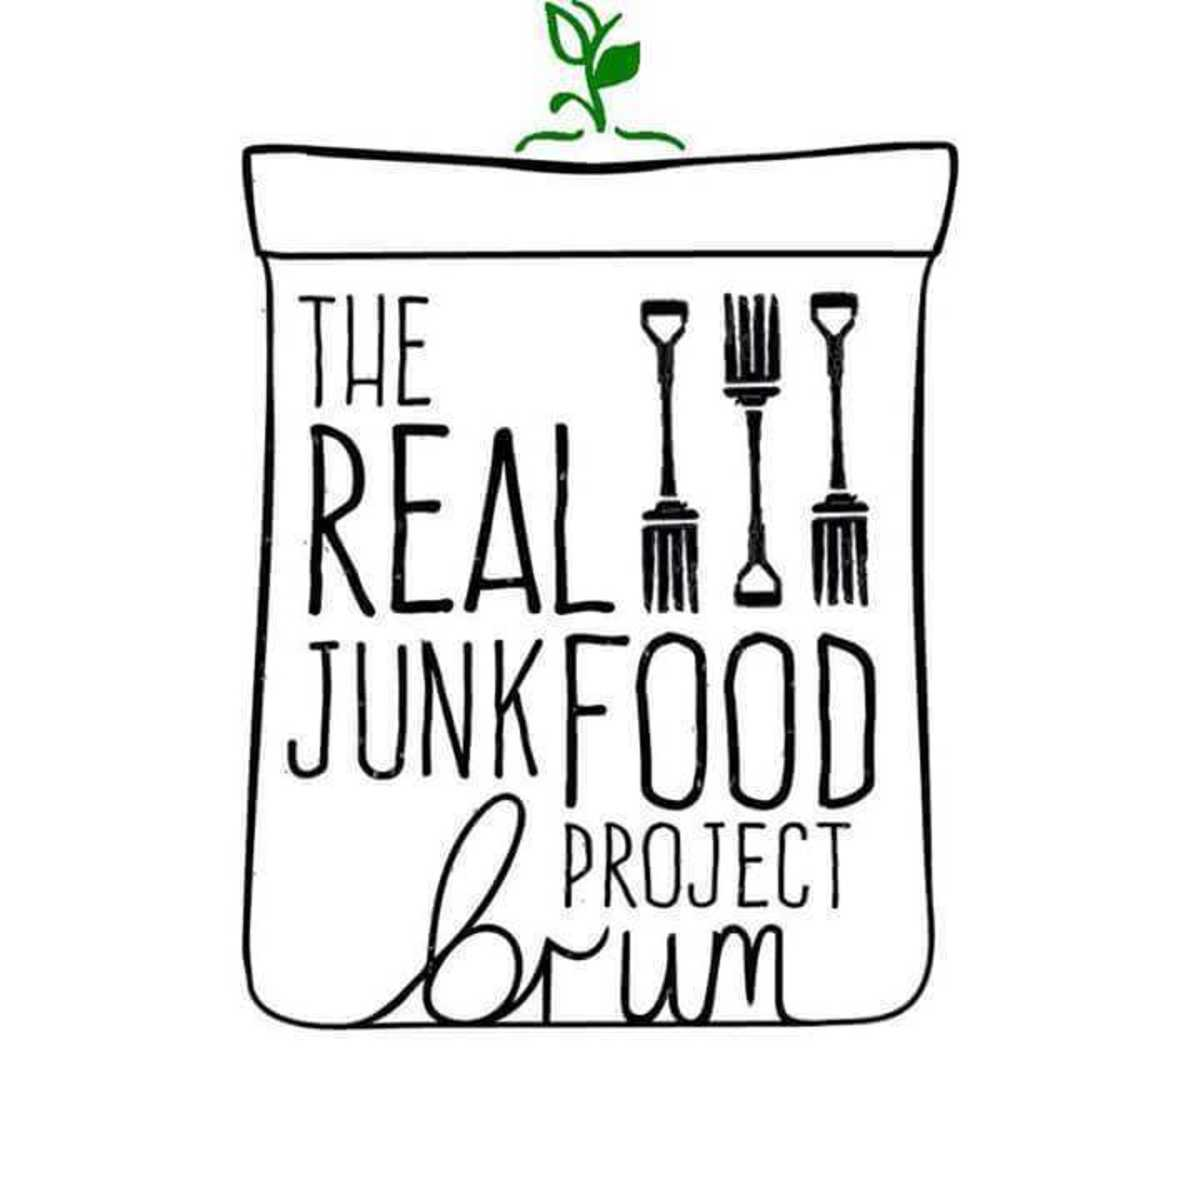 real junk food project - 960×960